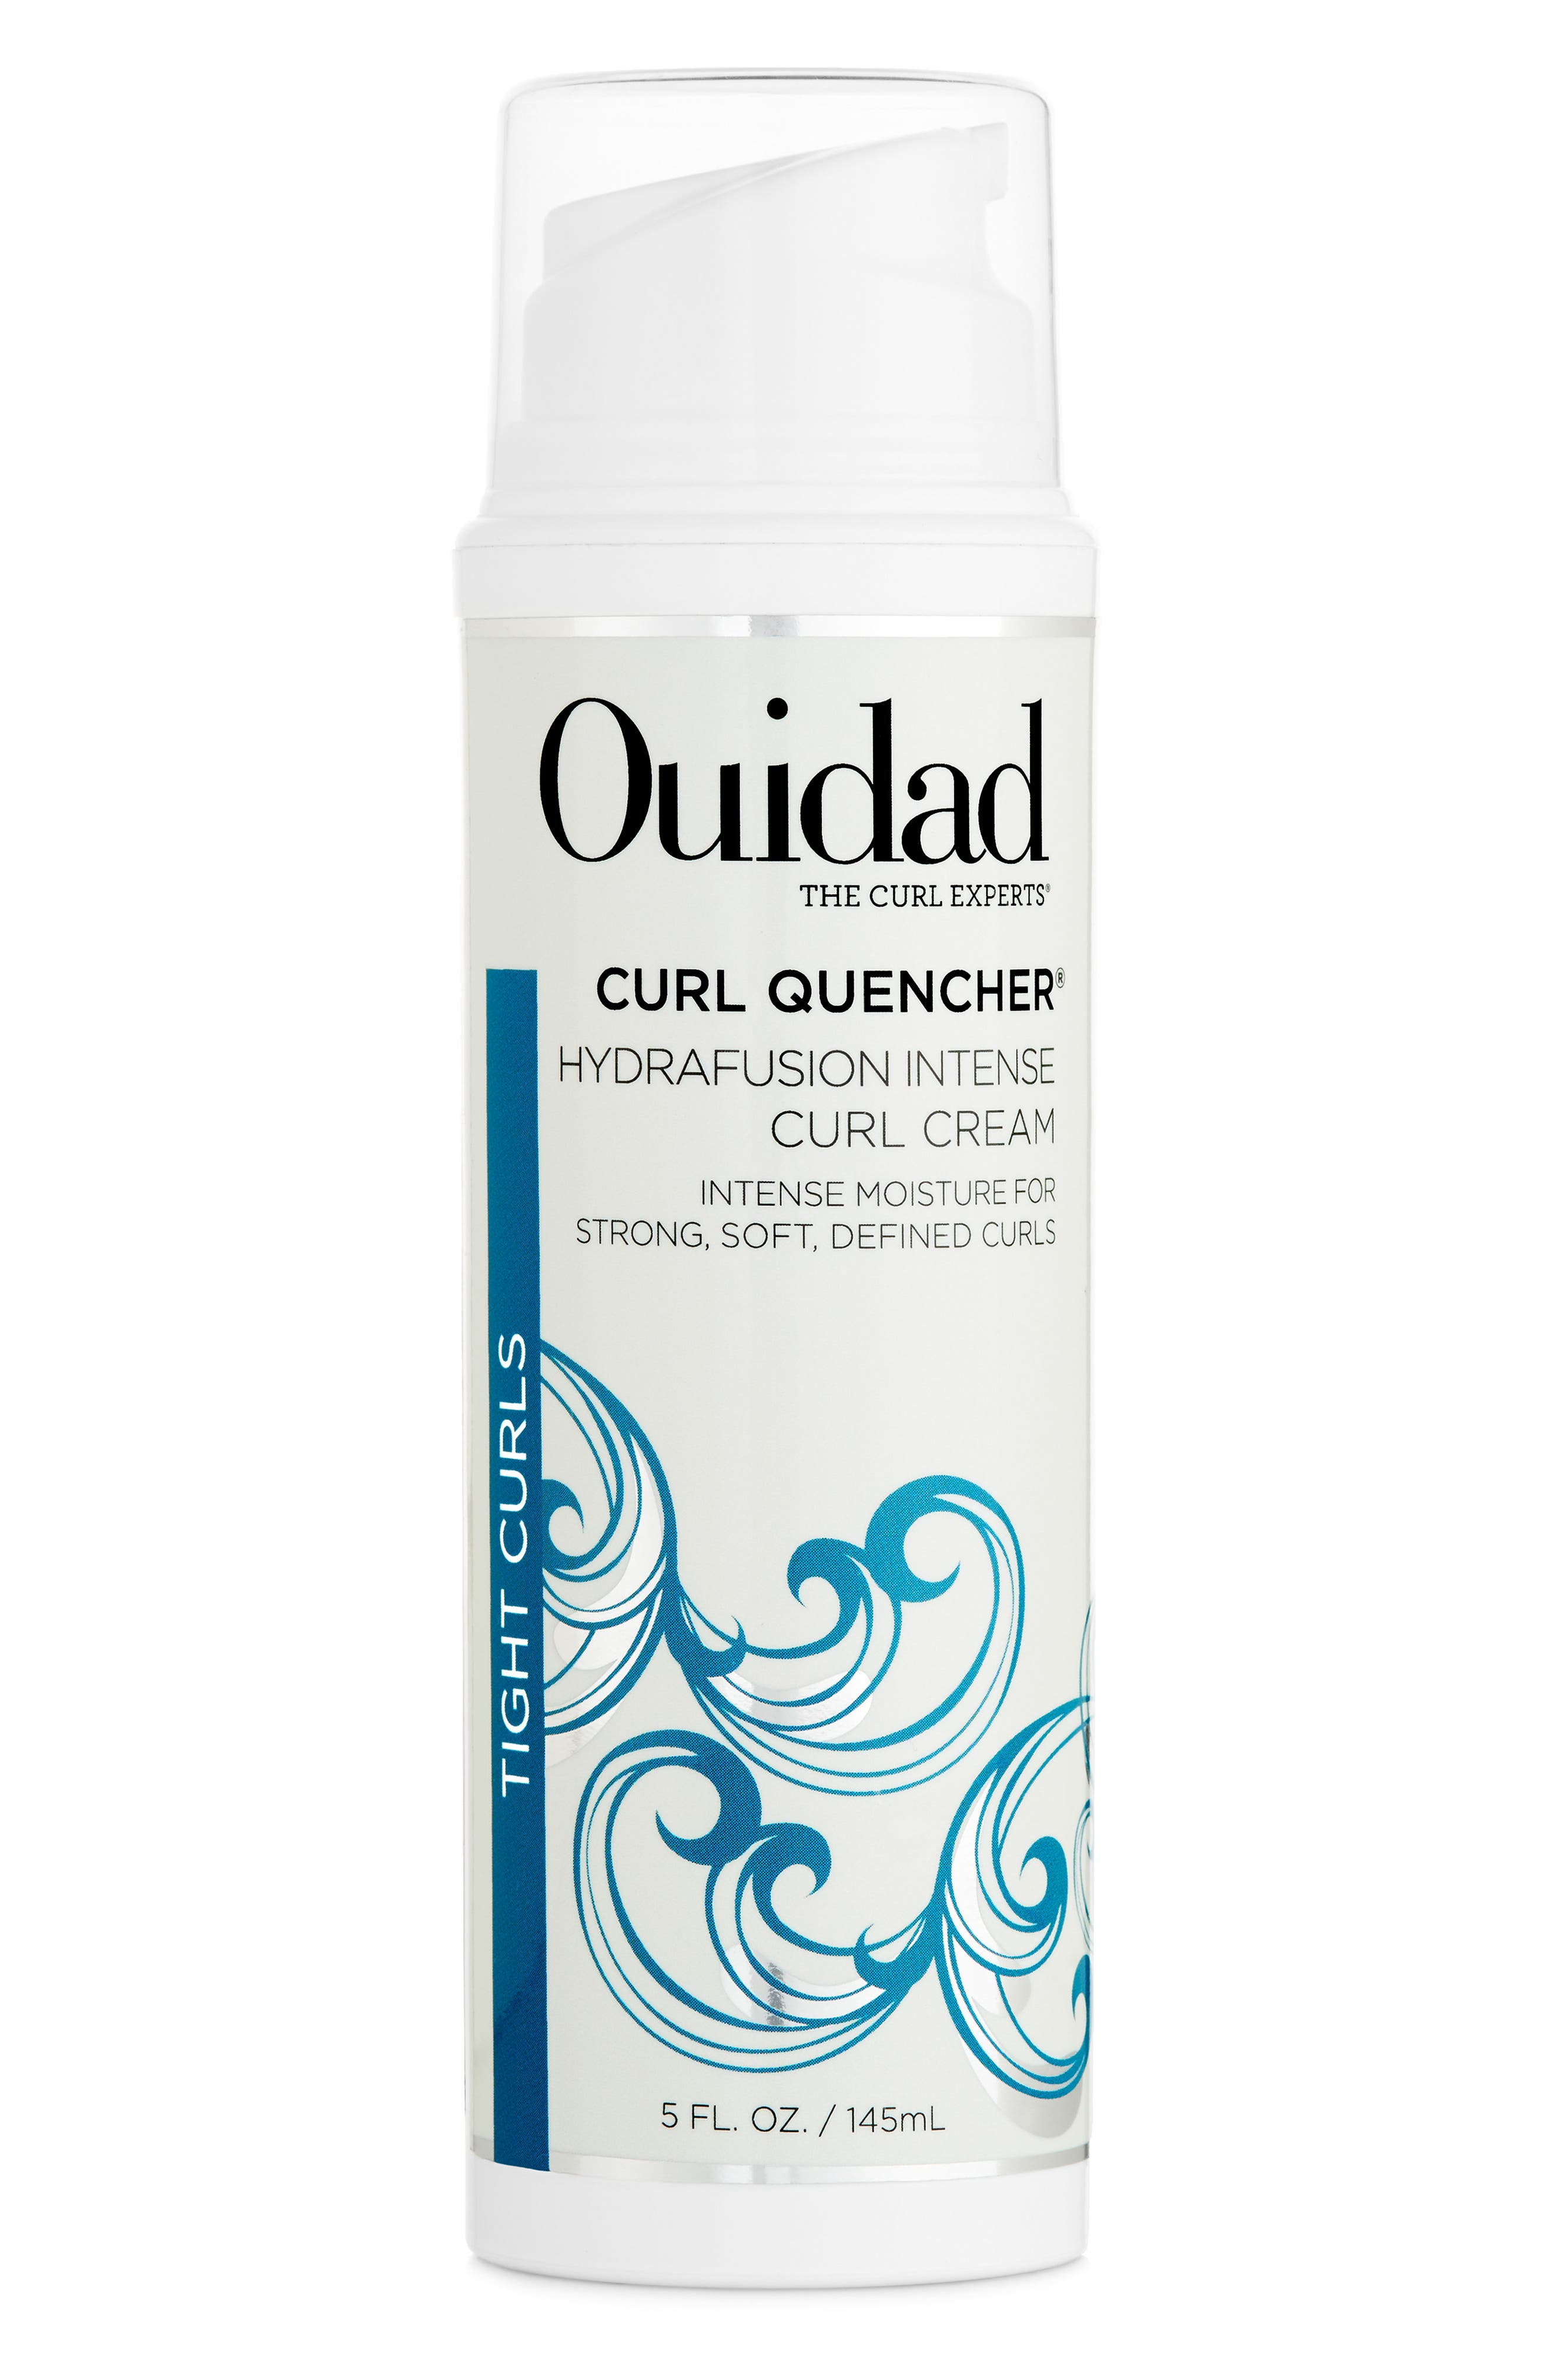 Ouidad Curl Quencher® HydraFusion Intense Curl Cream